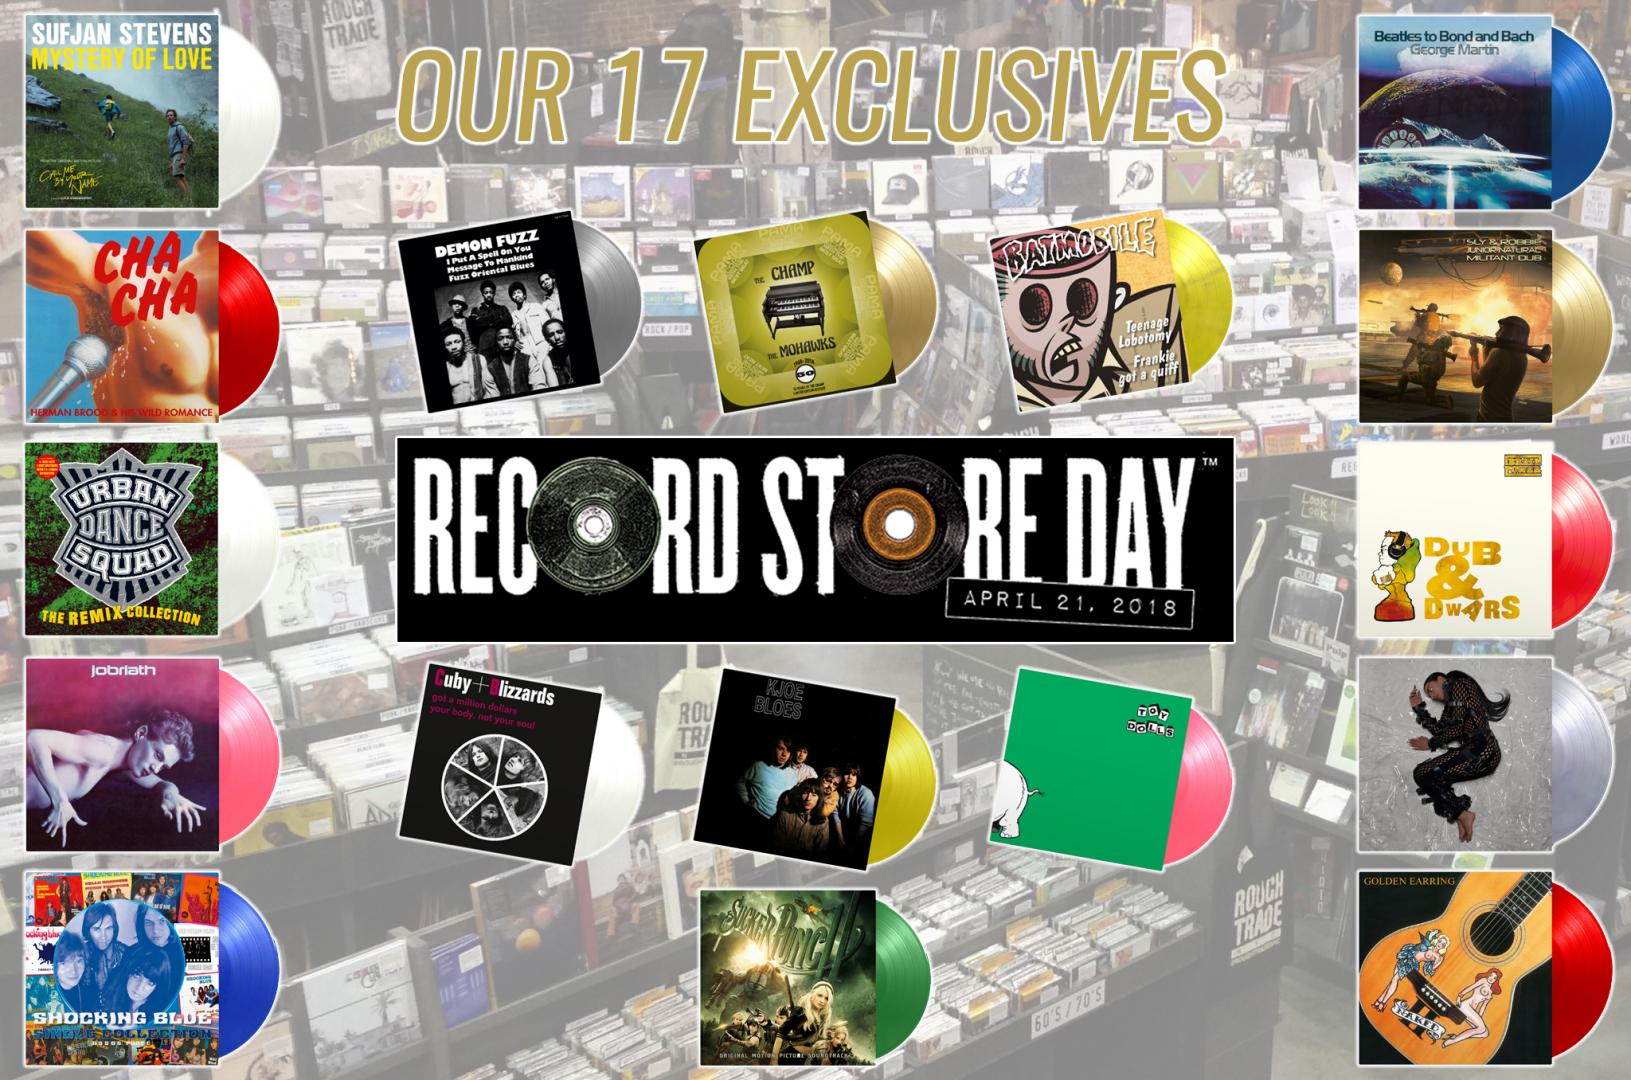 RECORD STORE DAY 2018 - Music On Vinyl